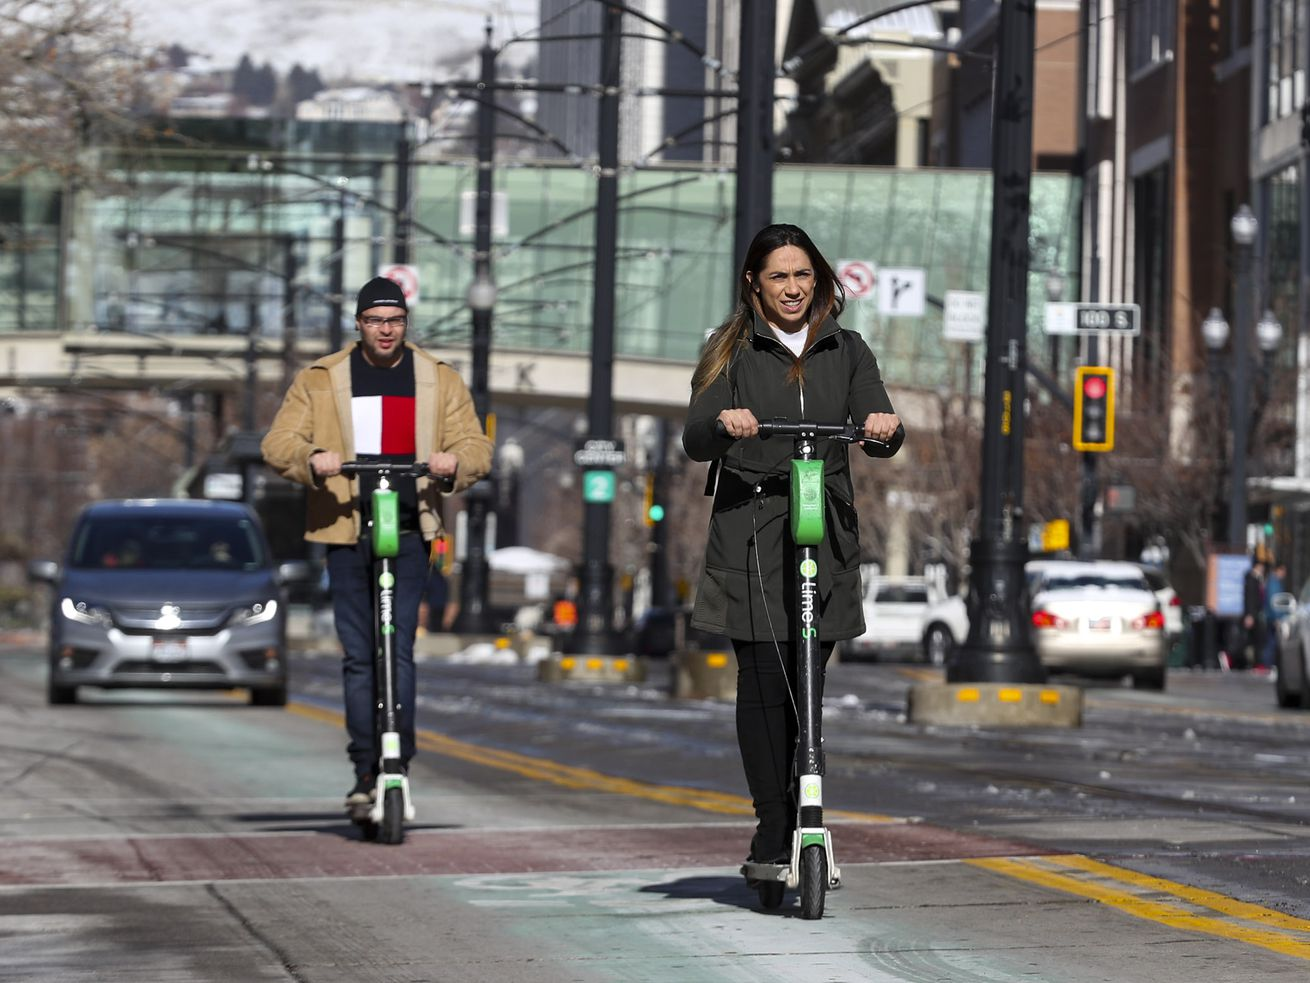 E-scooters: Urban blight or sweet new ride? Utah residents weigh in ahead of council vote